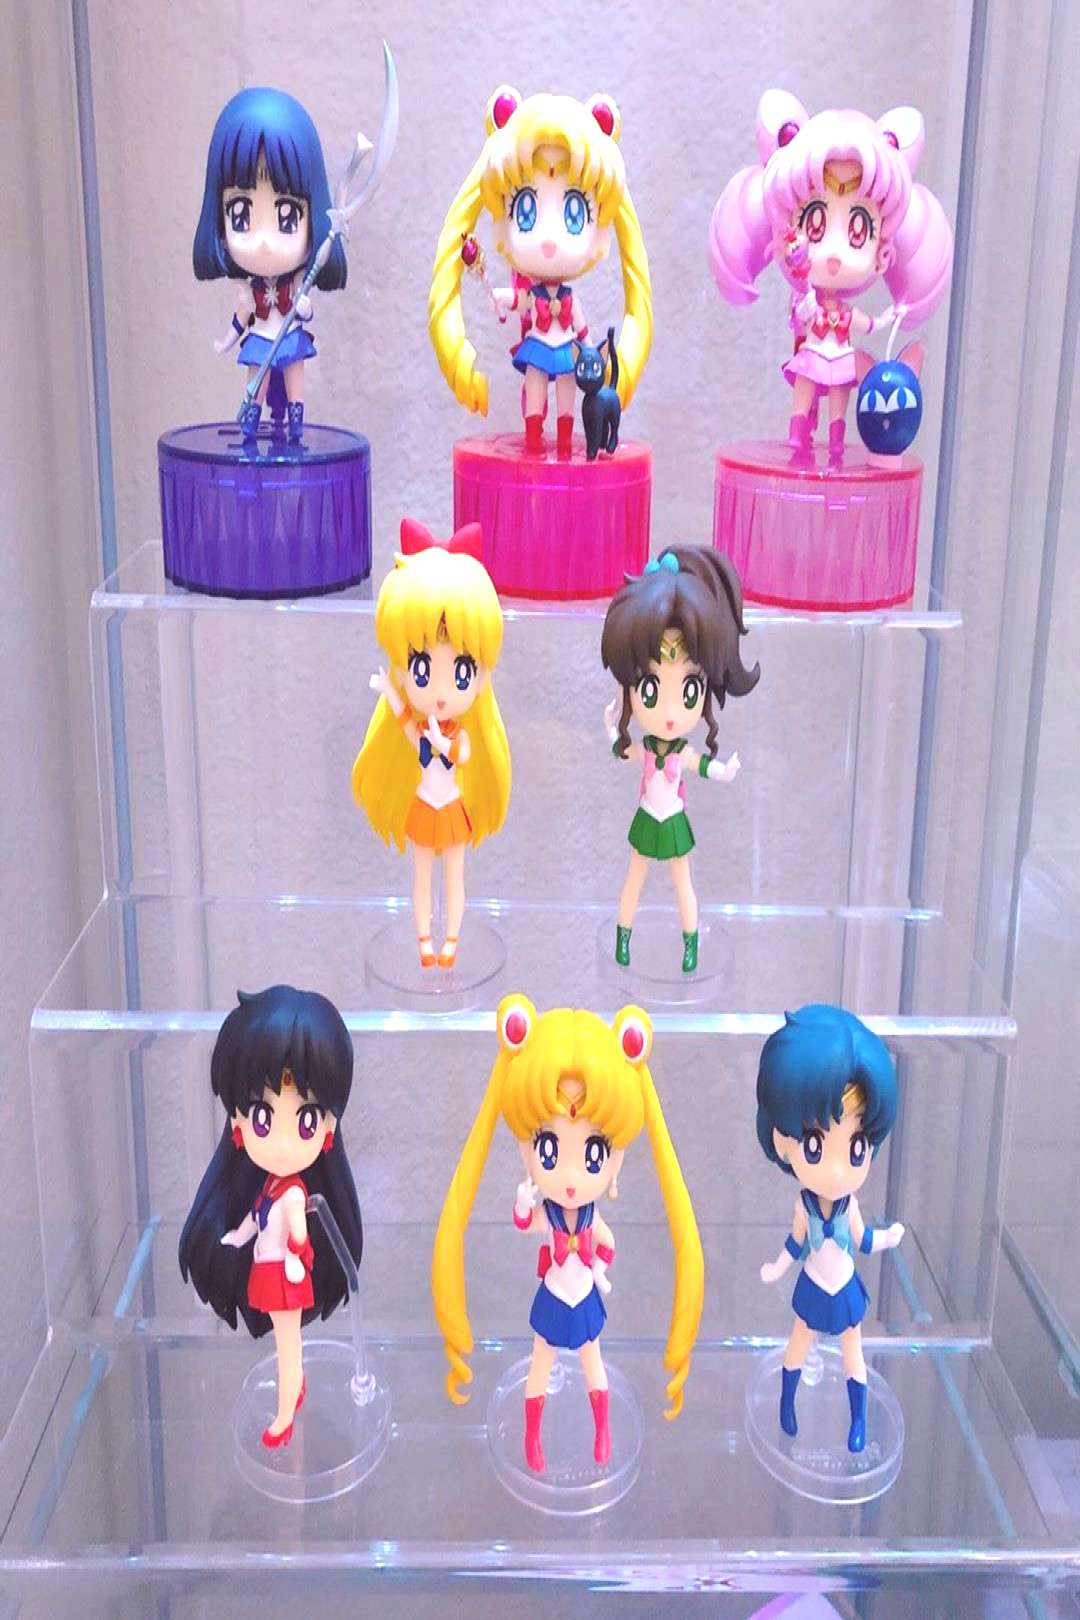 This is where I've put the SH Figuarts Minis. They're joined by t